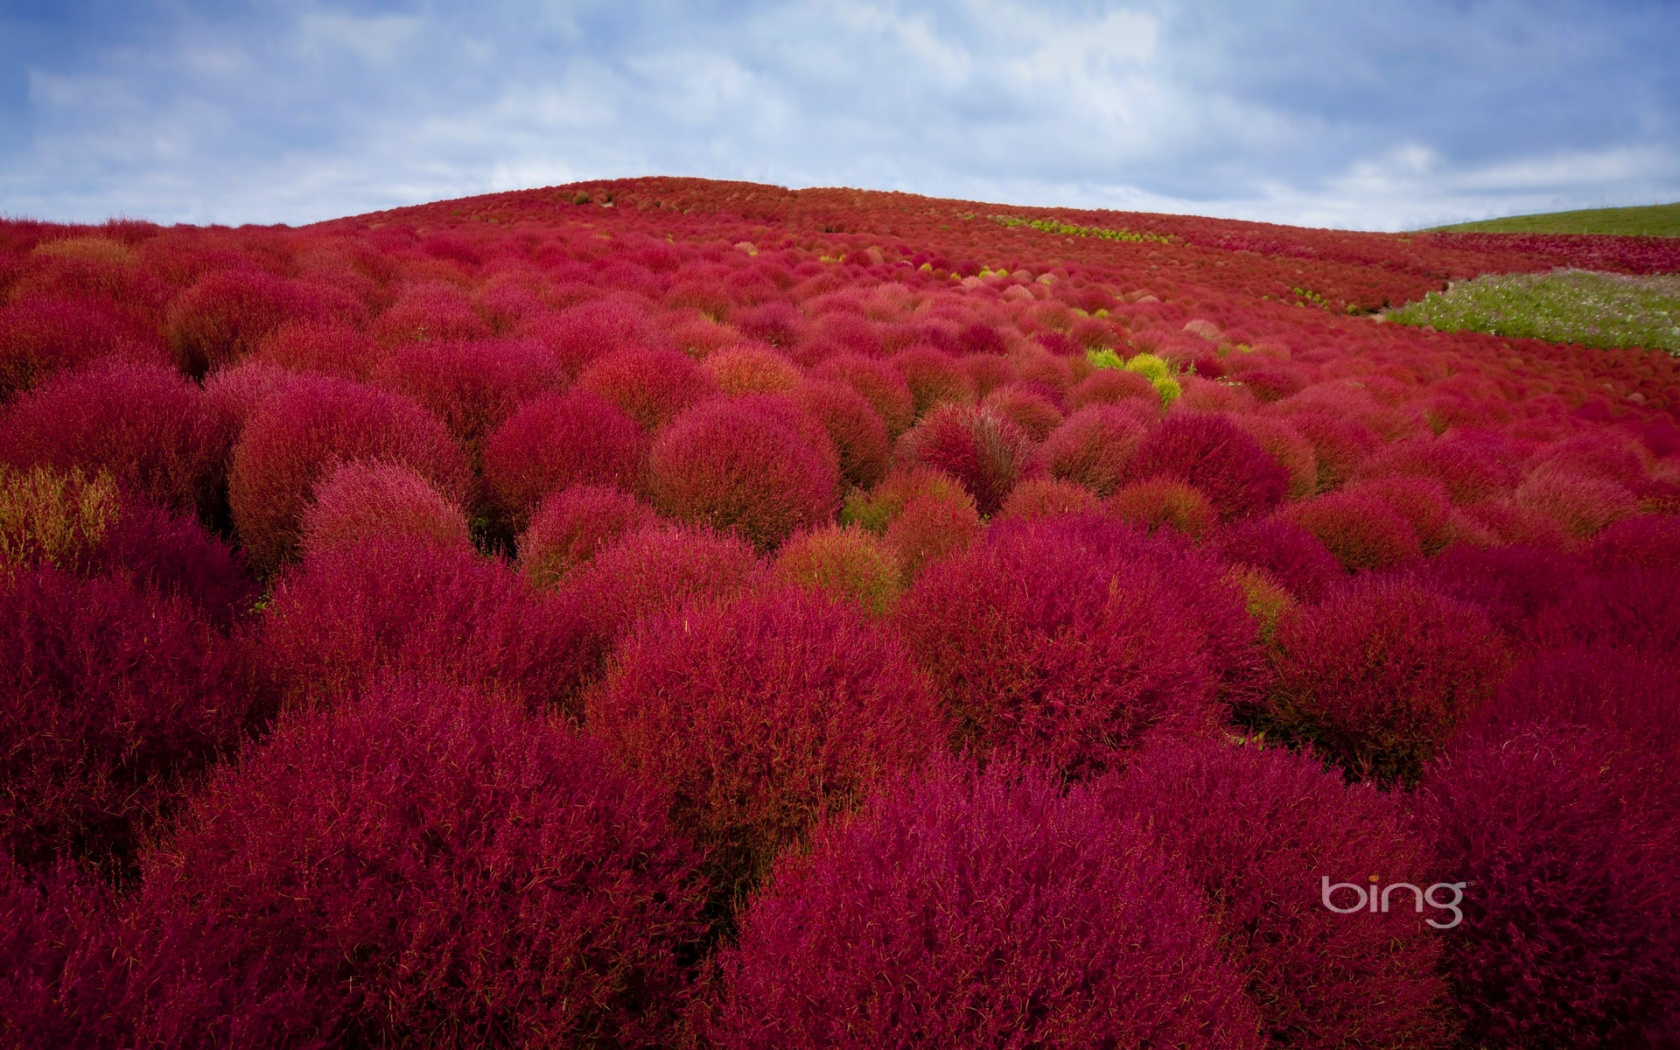 ... x 1200 Original Link. Download Hitachi Seaside Park ...